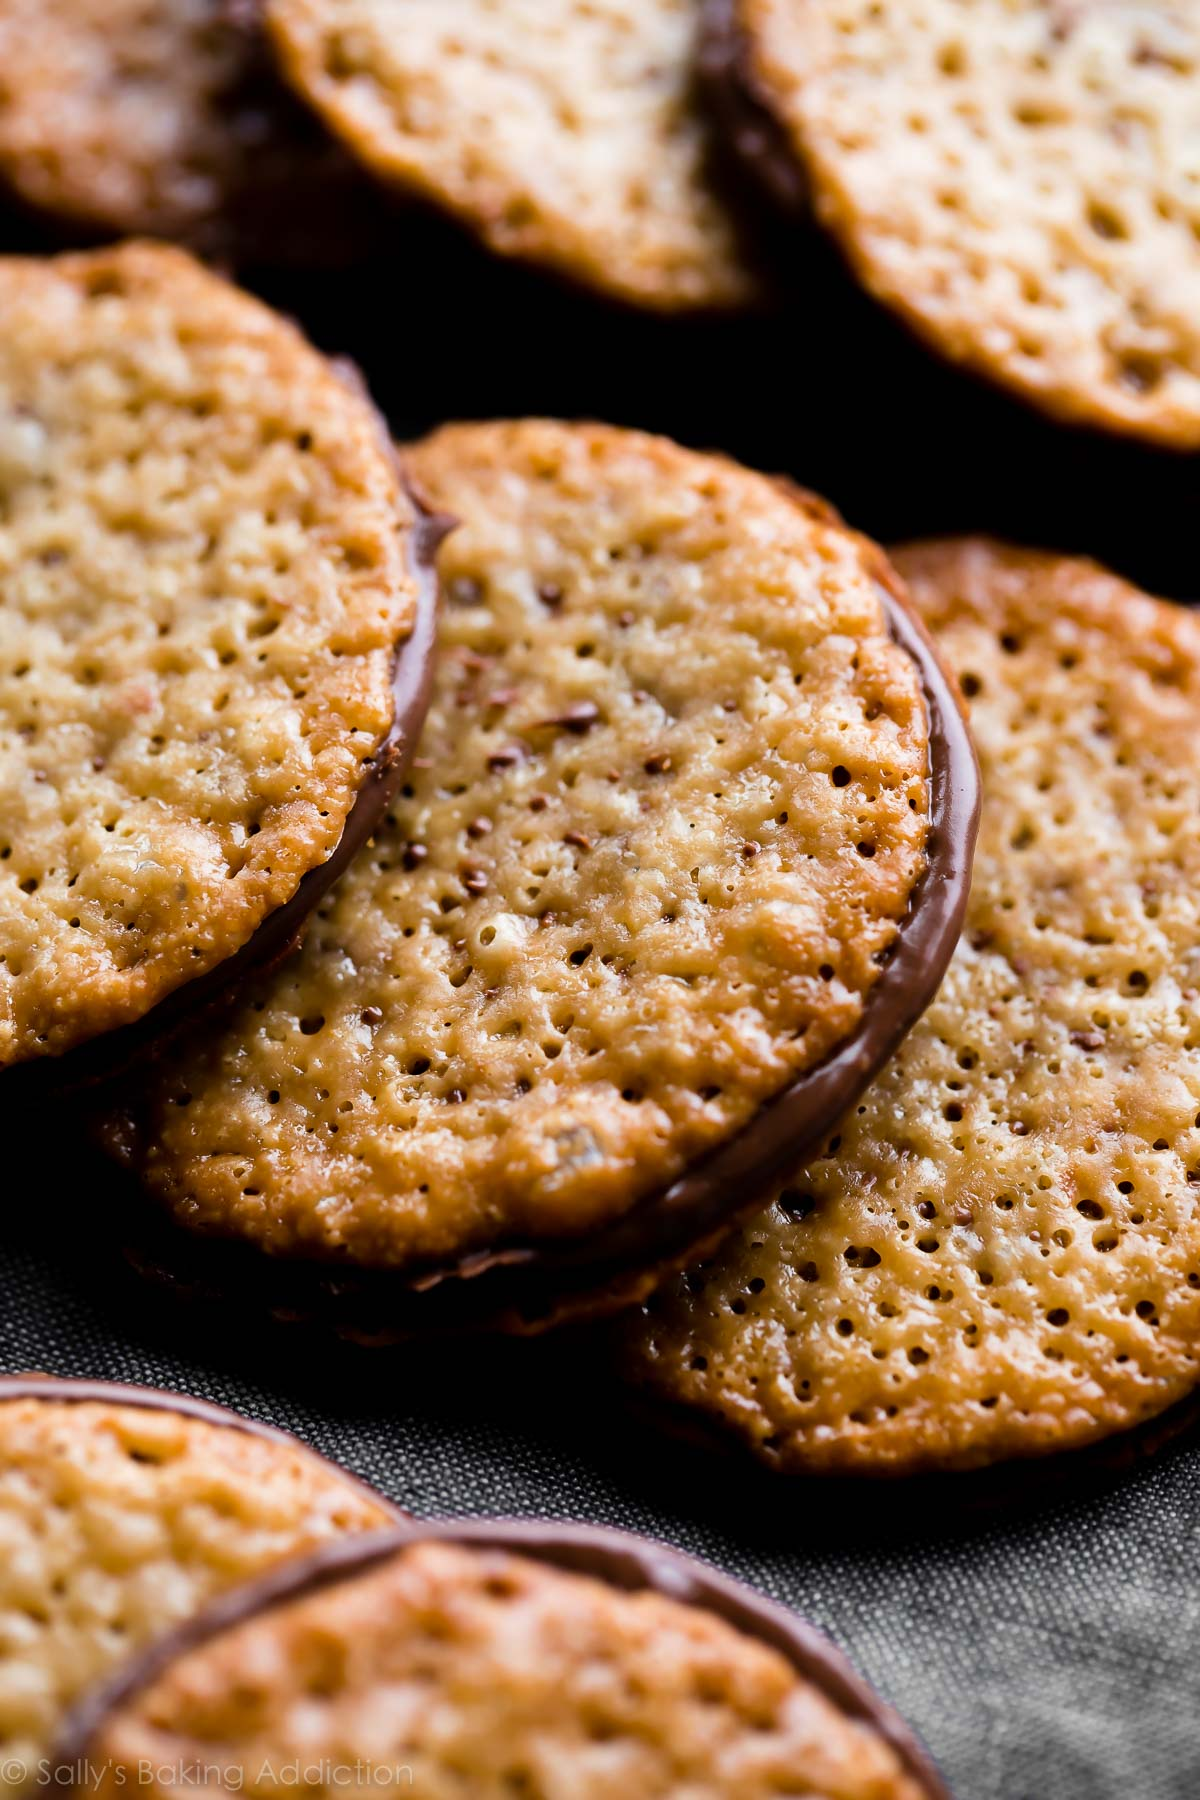 Almond lace cookies recipe